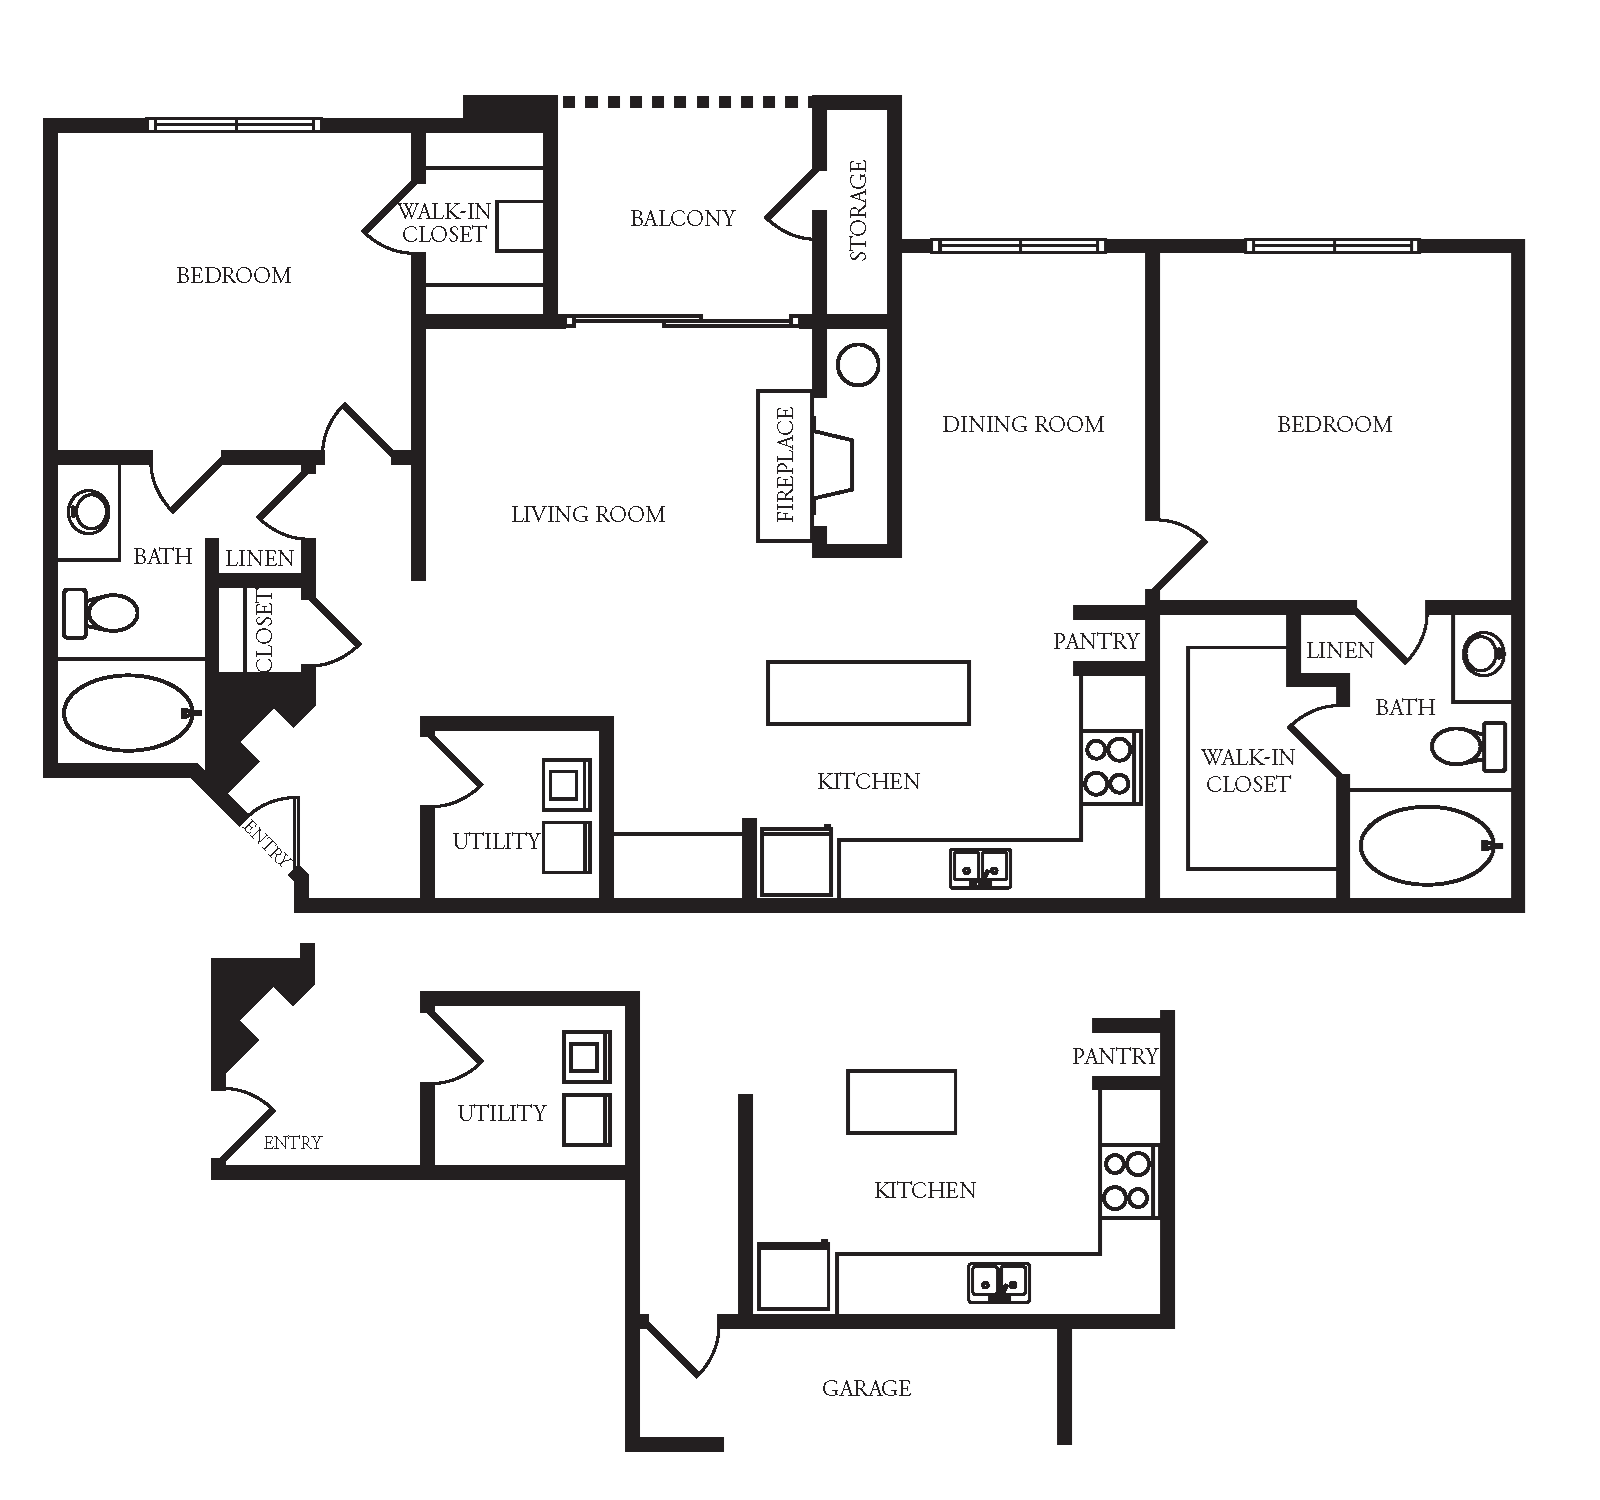 Providence In The Park Apartment Homes - 2 Bedroom 2 Bath Apartment